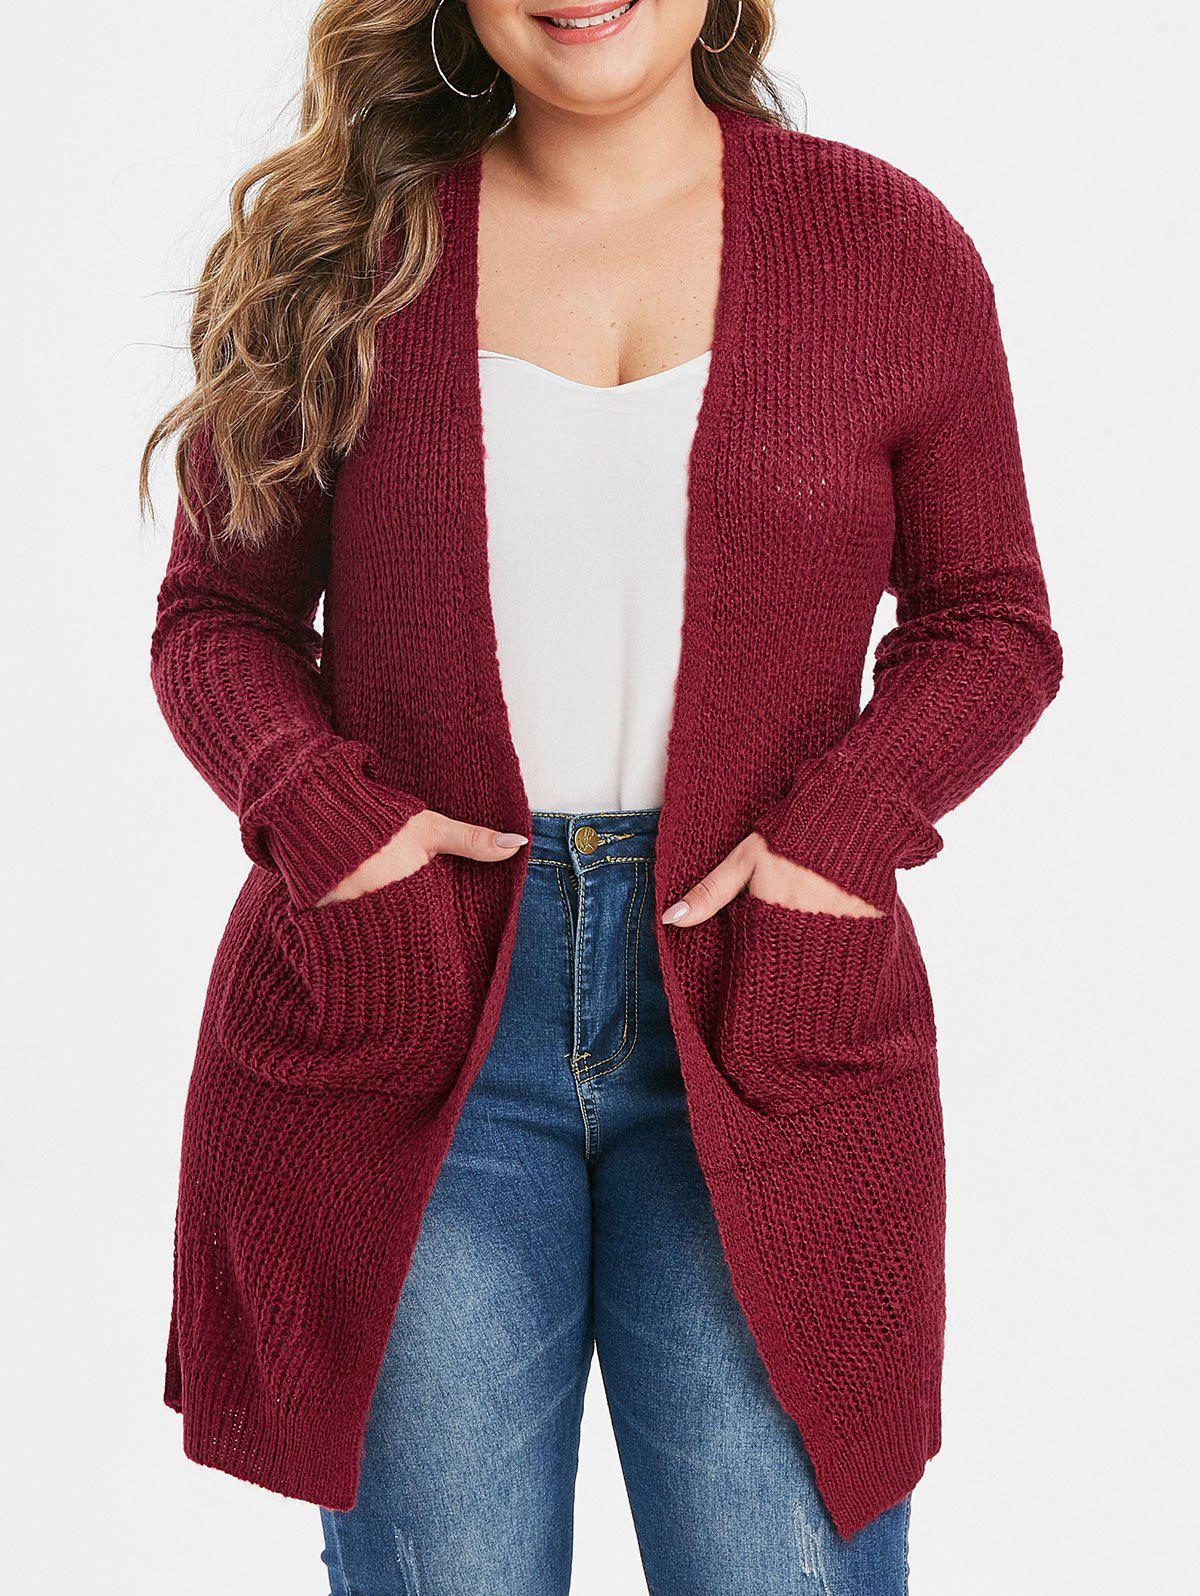 Plus Size double poches Cardigan solide Rouge 1X